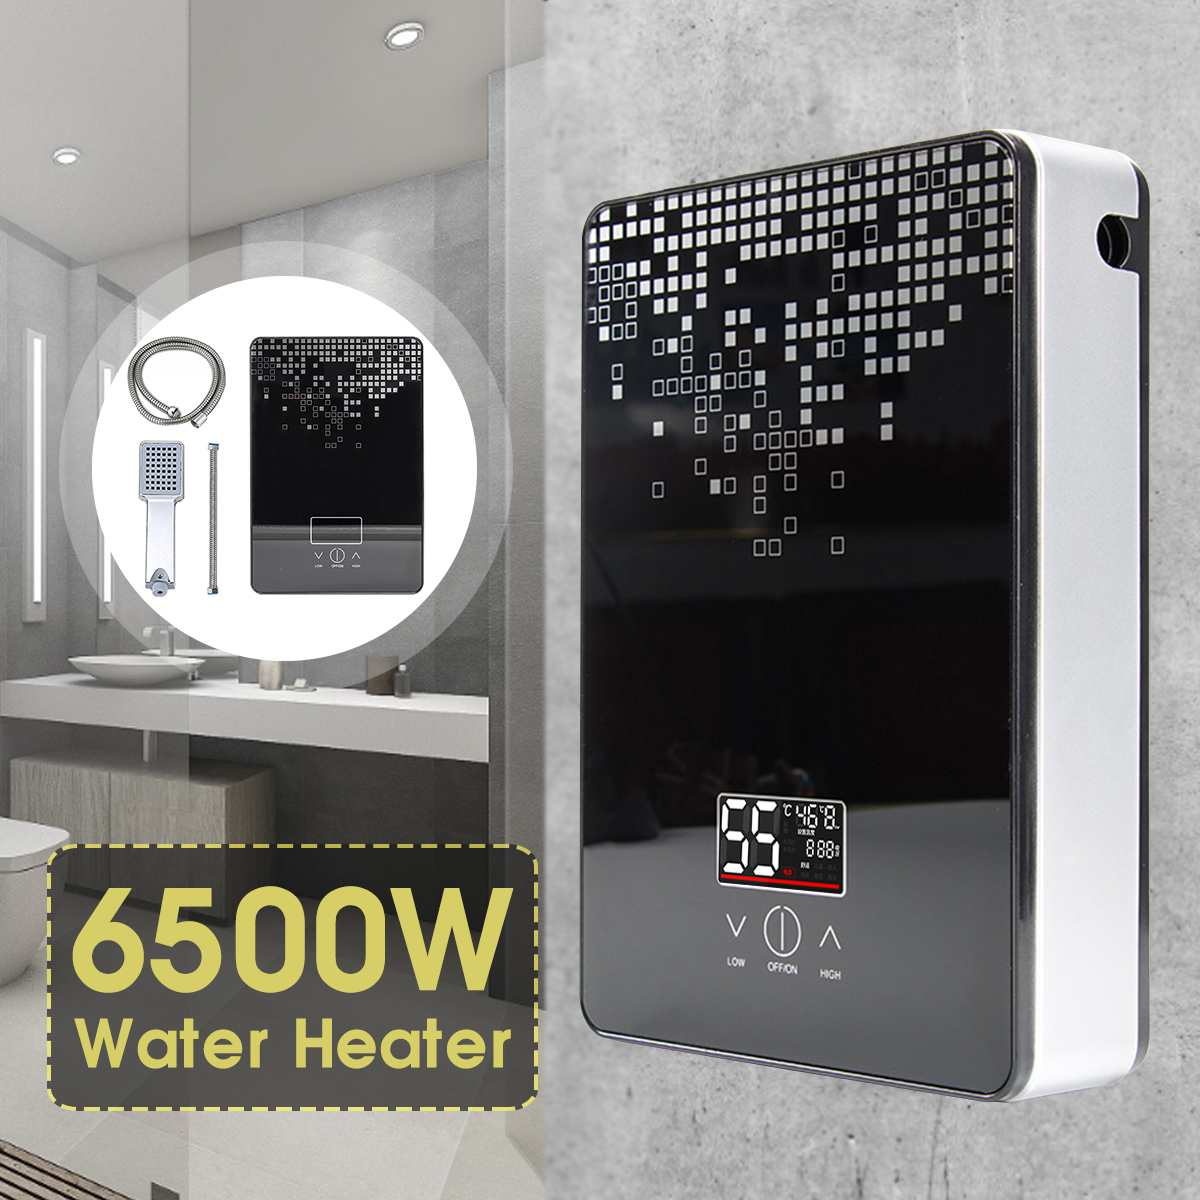 High Quality Instant Tankless Water Heater 6500w 220v Thermostat Induction Heater Smart Touch Electric Heaters Shower